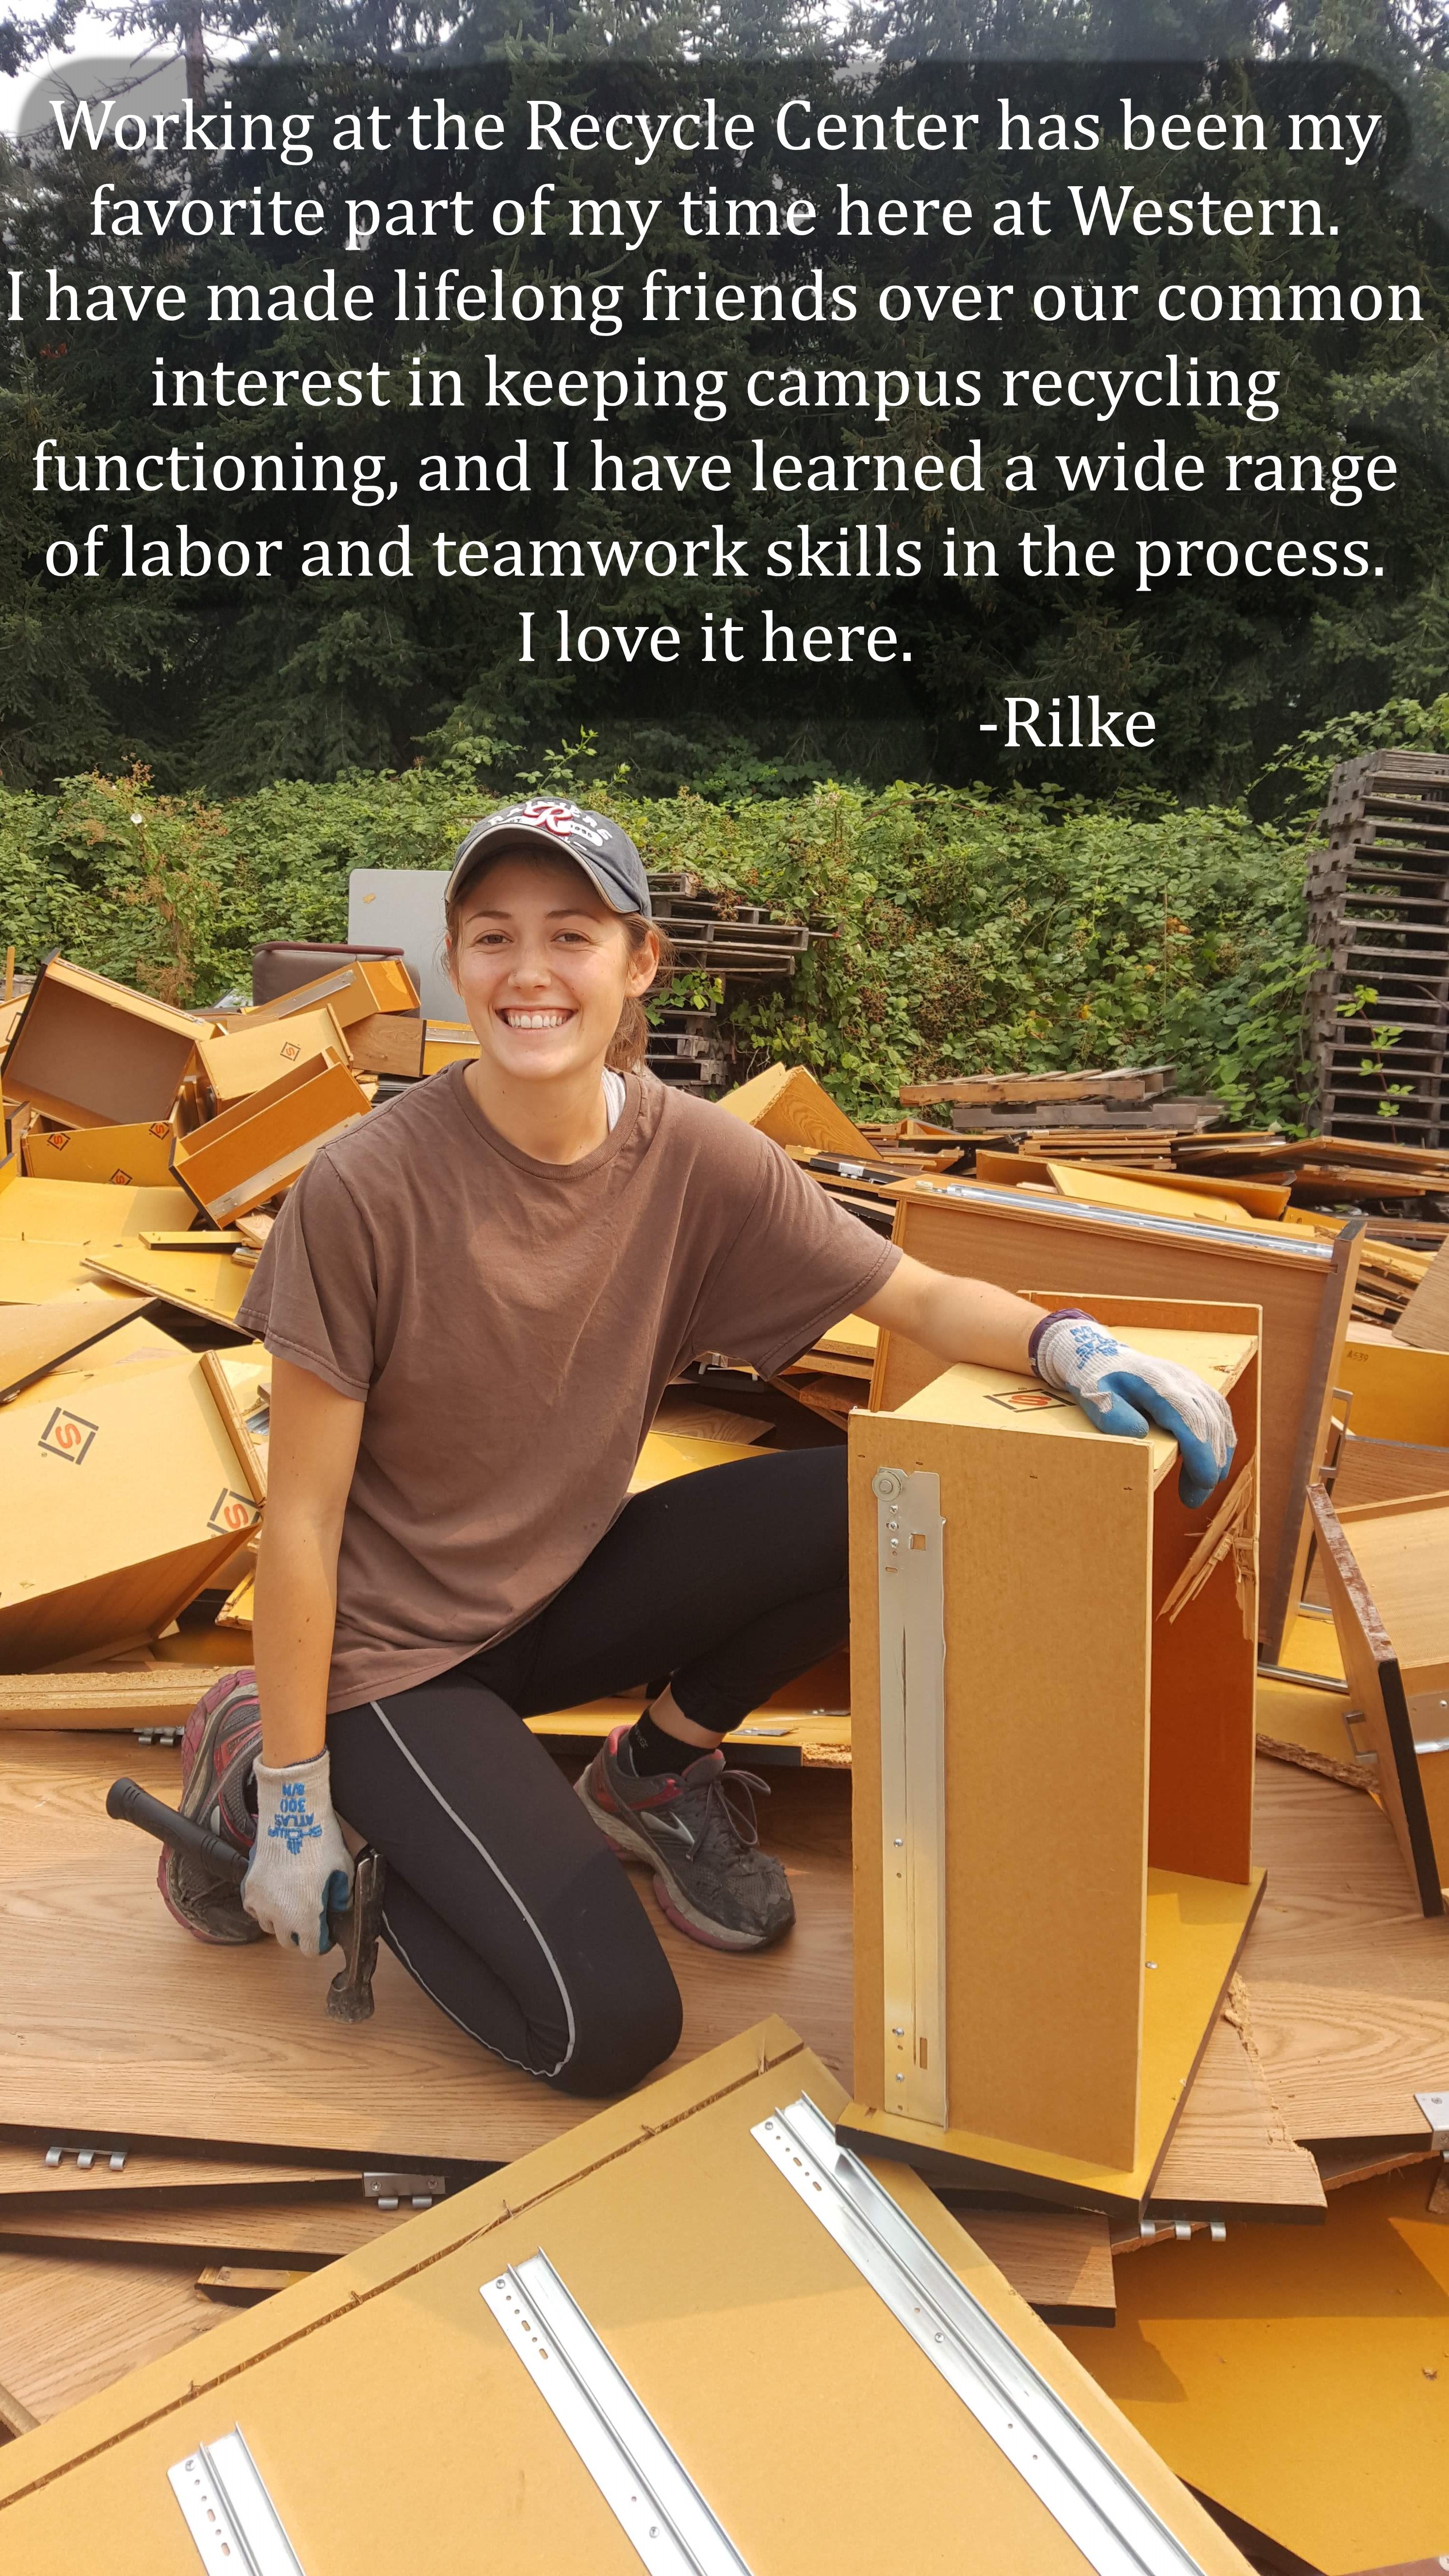 """""""Working at the Recycle Center has been my favorite part about Western and the time I have spent here. I have made lifelong friends over our common interest in keeping campus recycling functioning and learning a really wide range of labor and teamwork skills in the process. I could have never gotten to know this campus as intimately if I had not gotten to work as a student manager here. I love it here."""" -Rilke, current employee"""